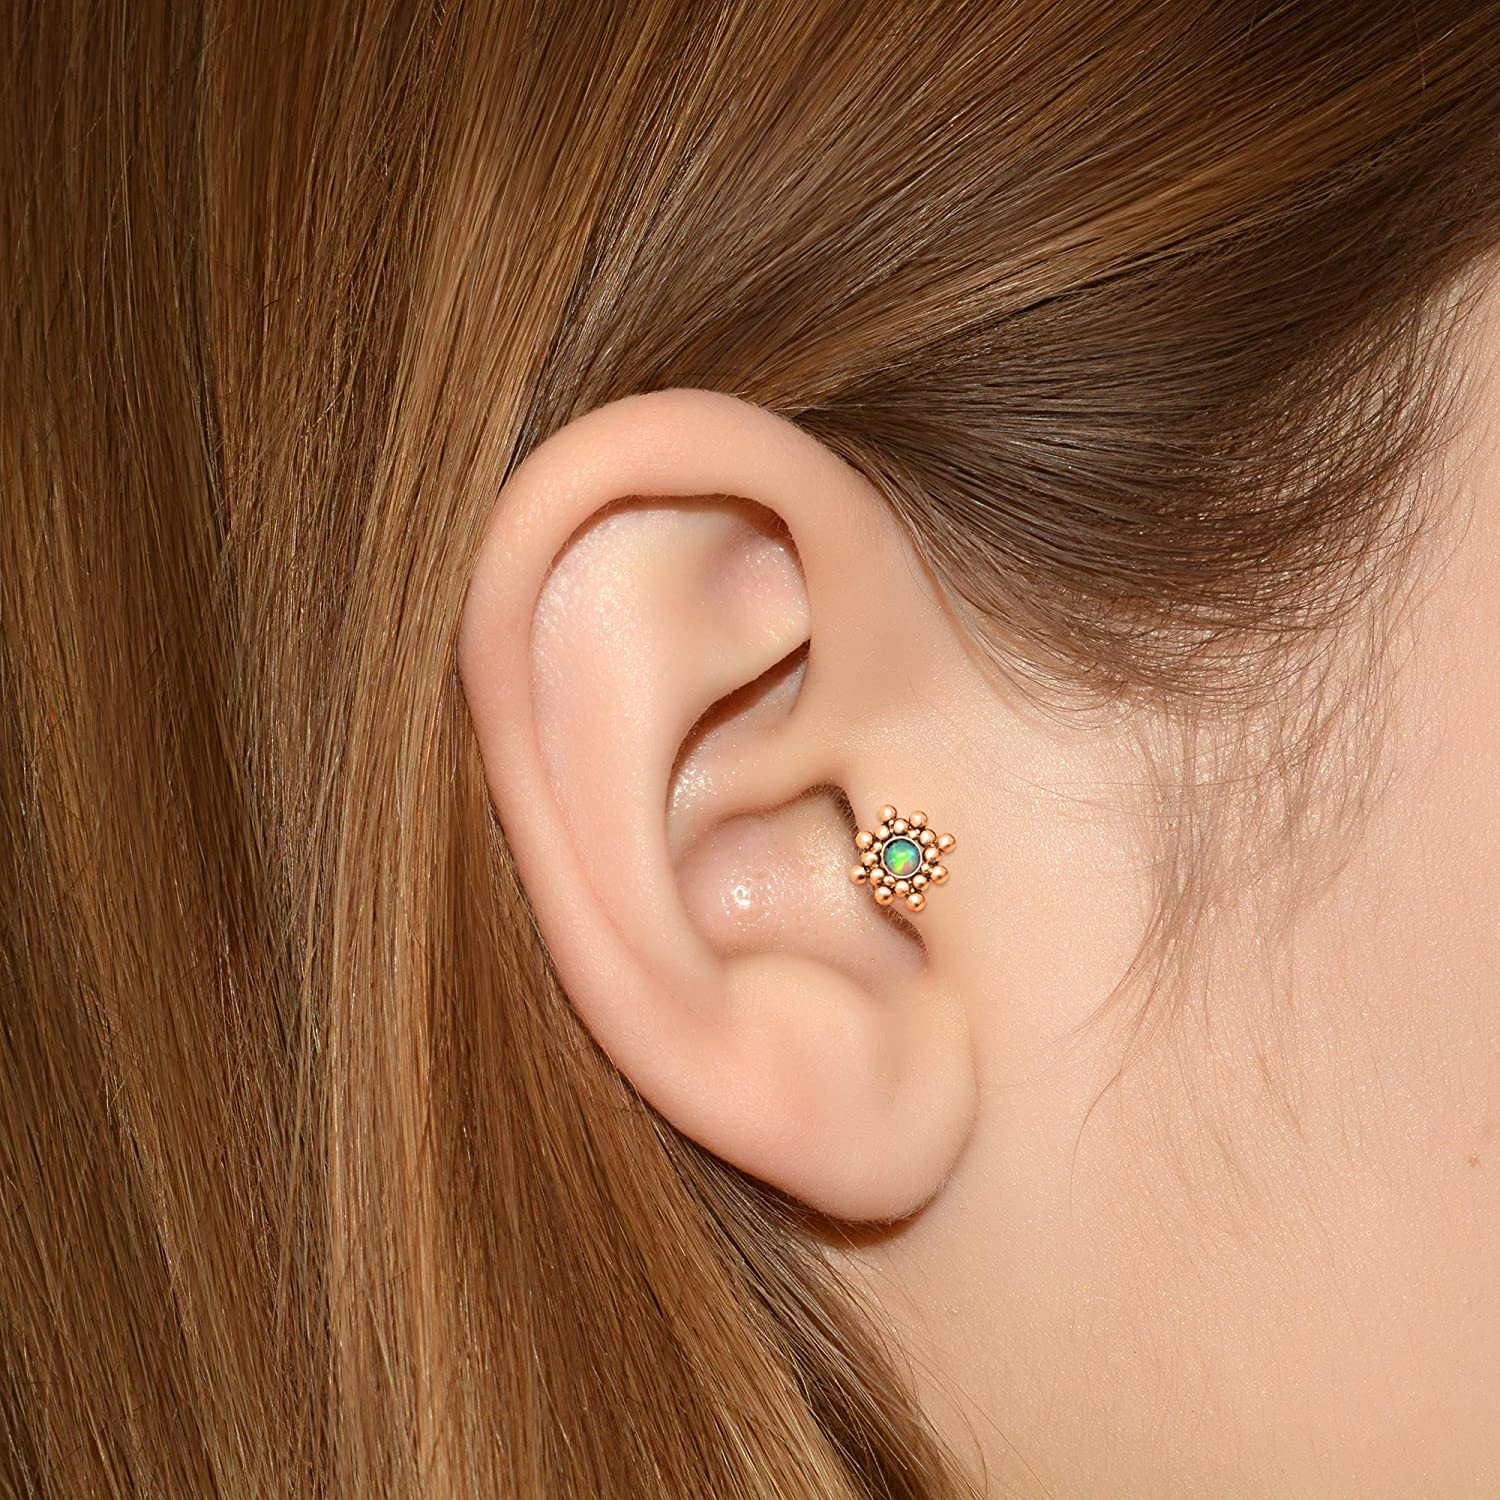 Labret Jewelry Forward Helix Jewelry Tragus Piercing Stud Opal Conch Stud 316L Surgical Steel Cartilage Barbell